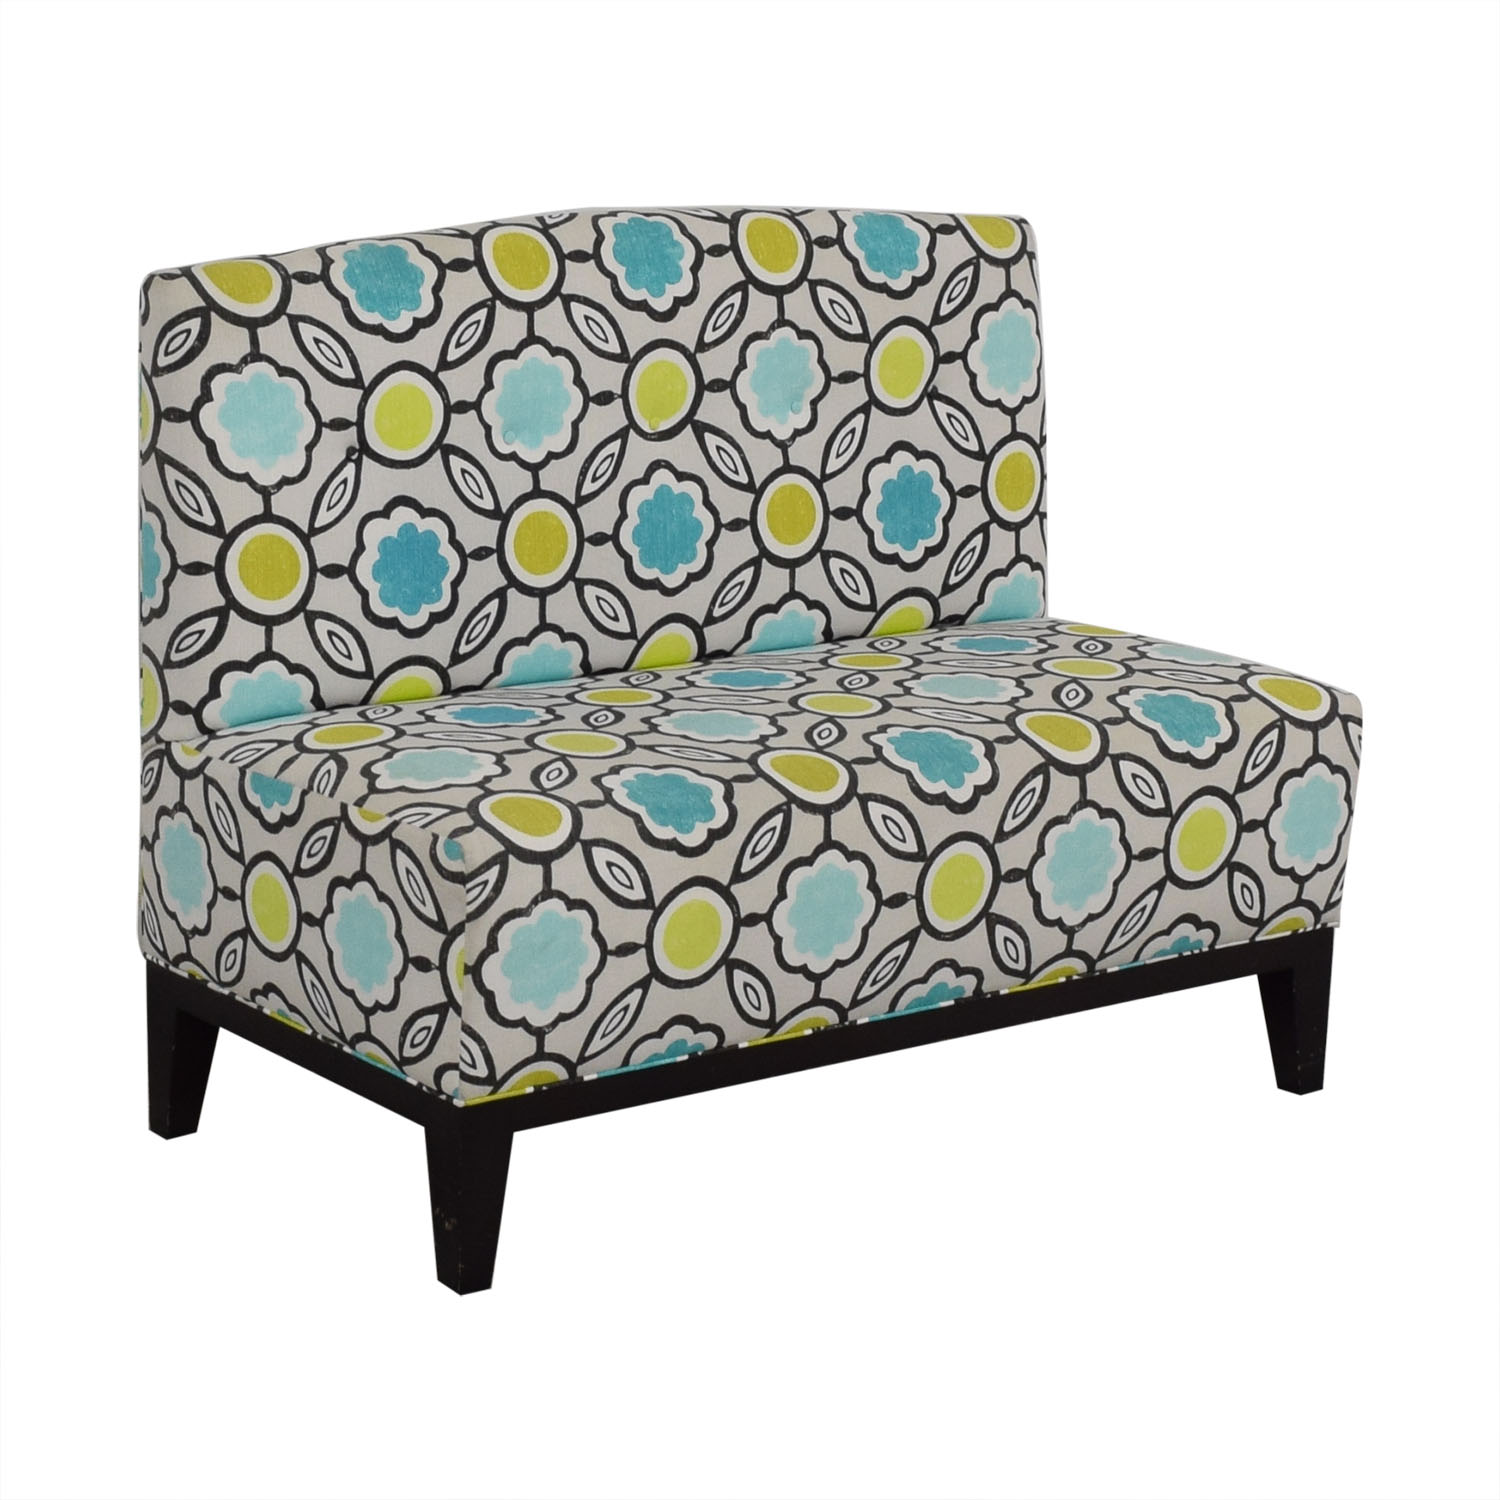 buy Stewart Furniture Stewart Furniture Dining Banquette online